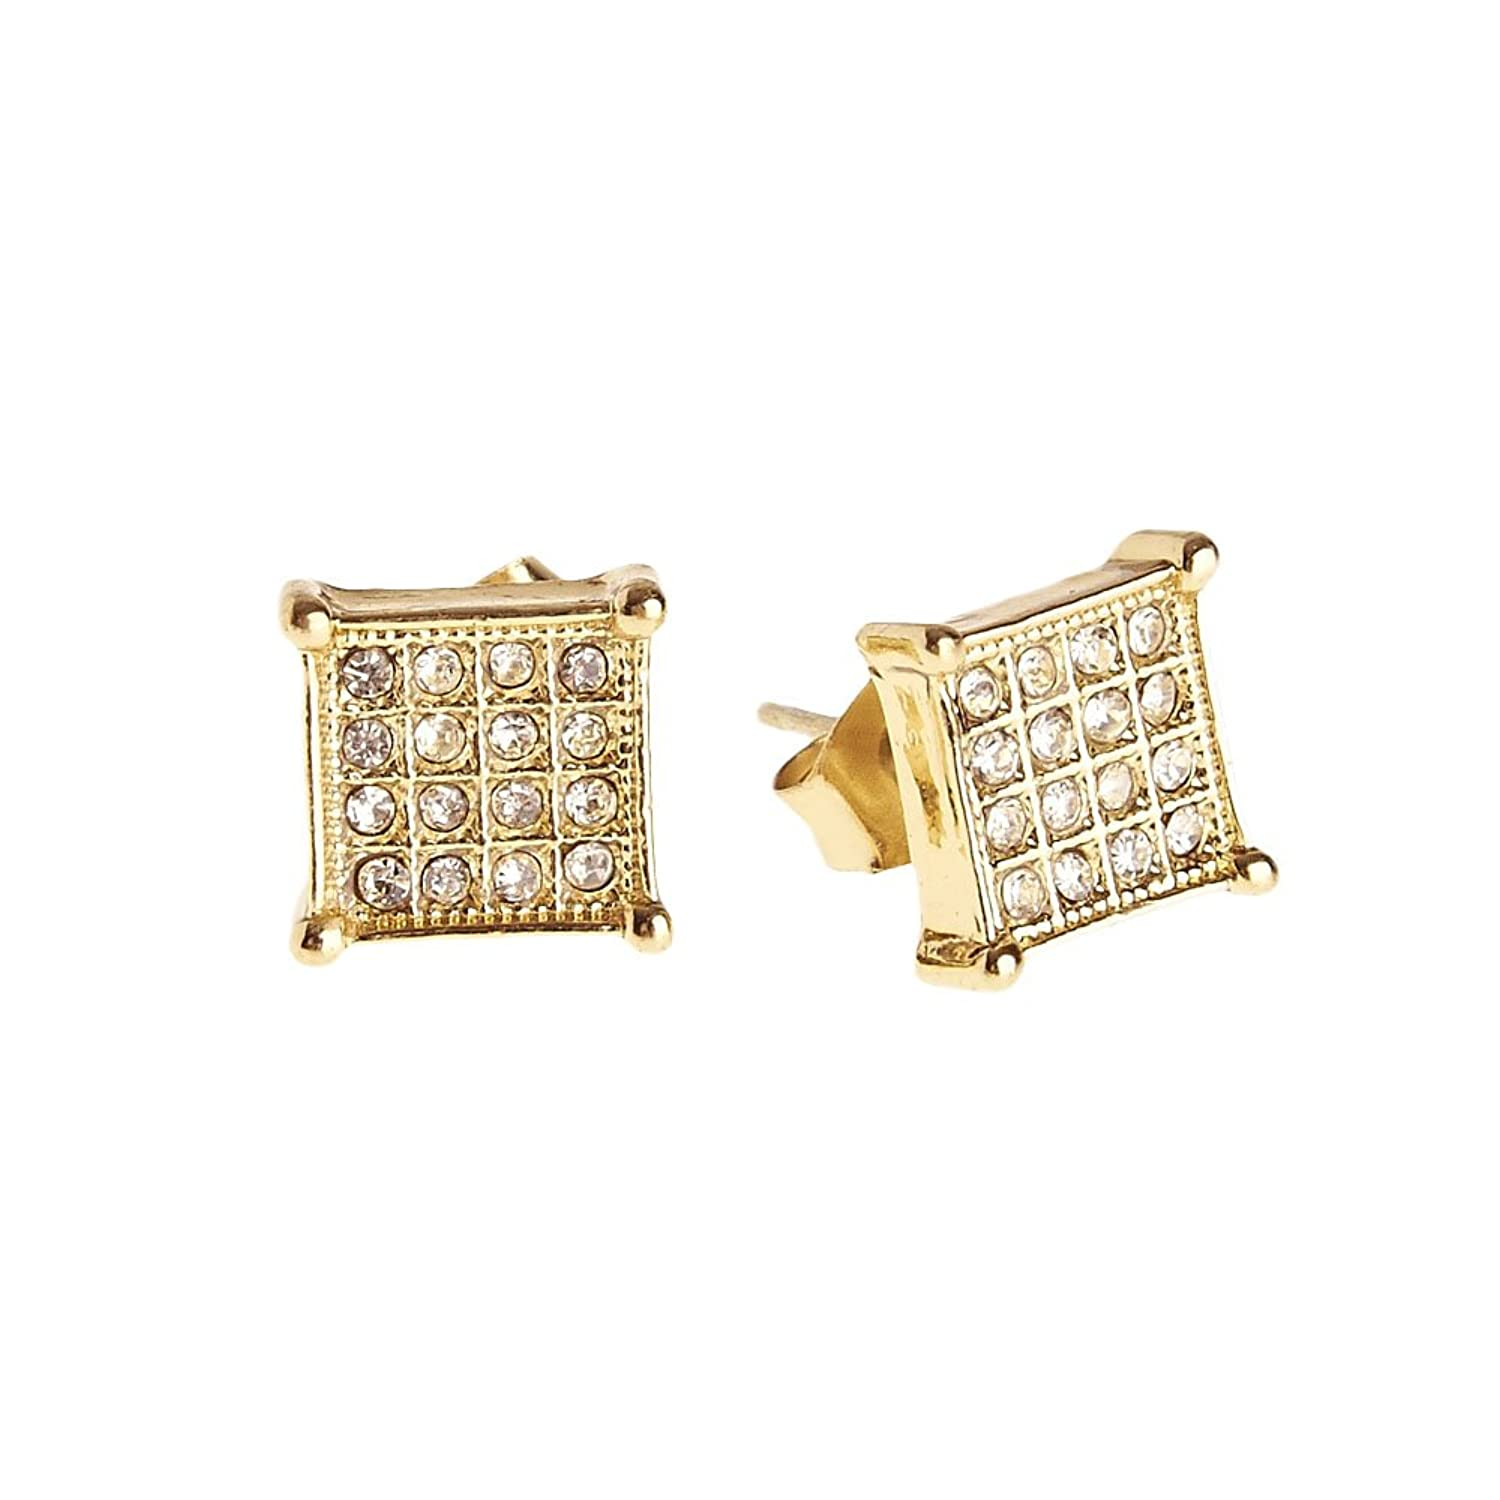 Iced Out Bling Earrings Box - SQUARE 8mm gold